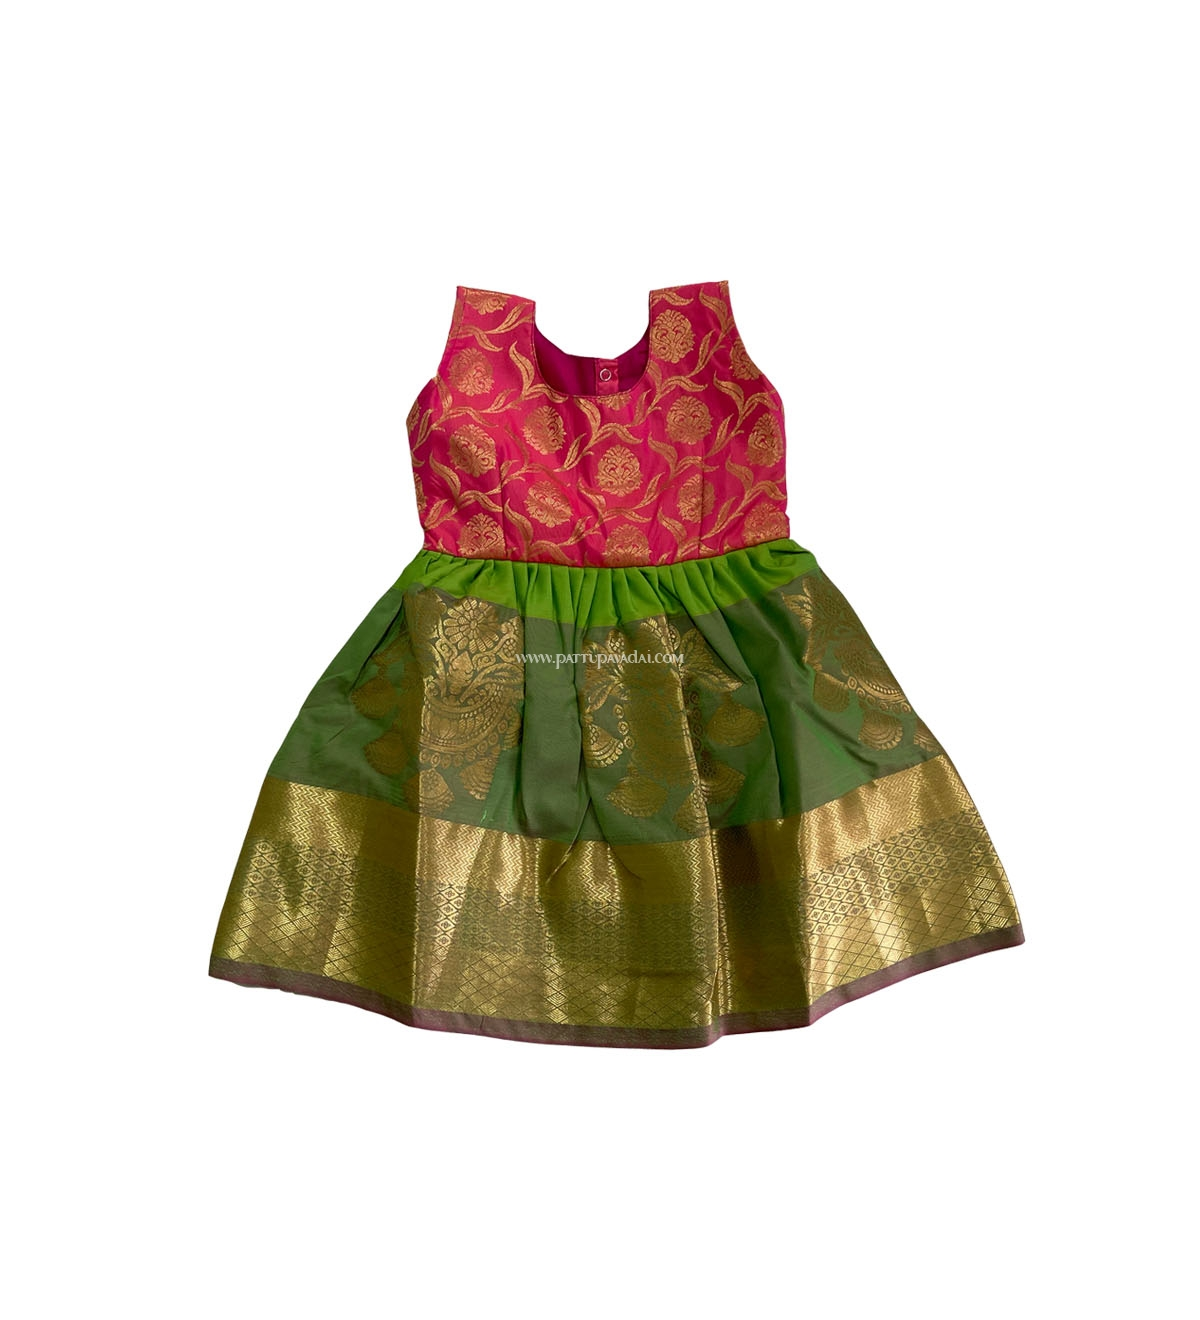 a6af2aa60b741 Shop now - Pure Silk Kids Frock Pink and Green